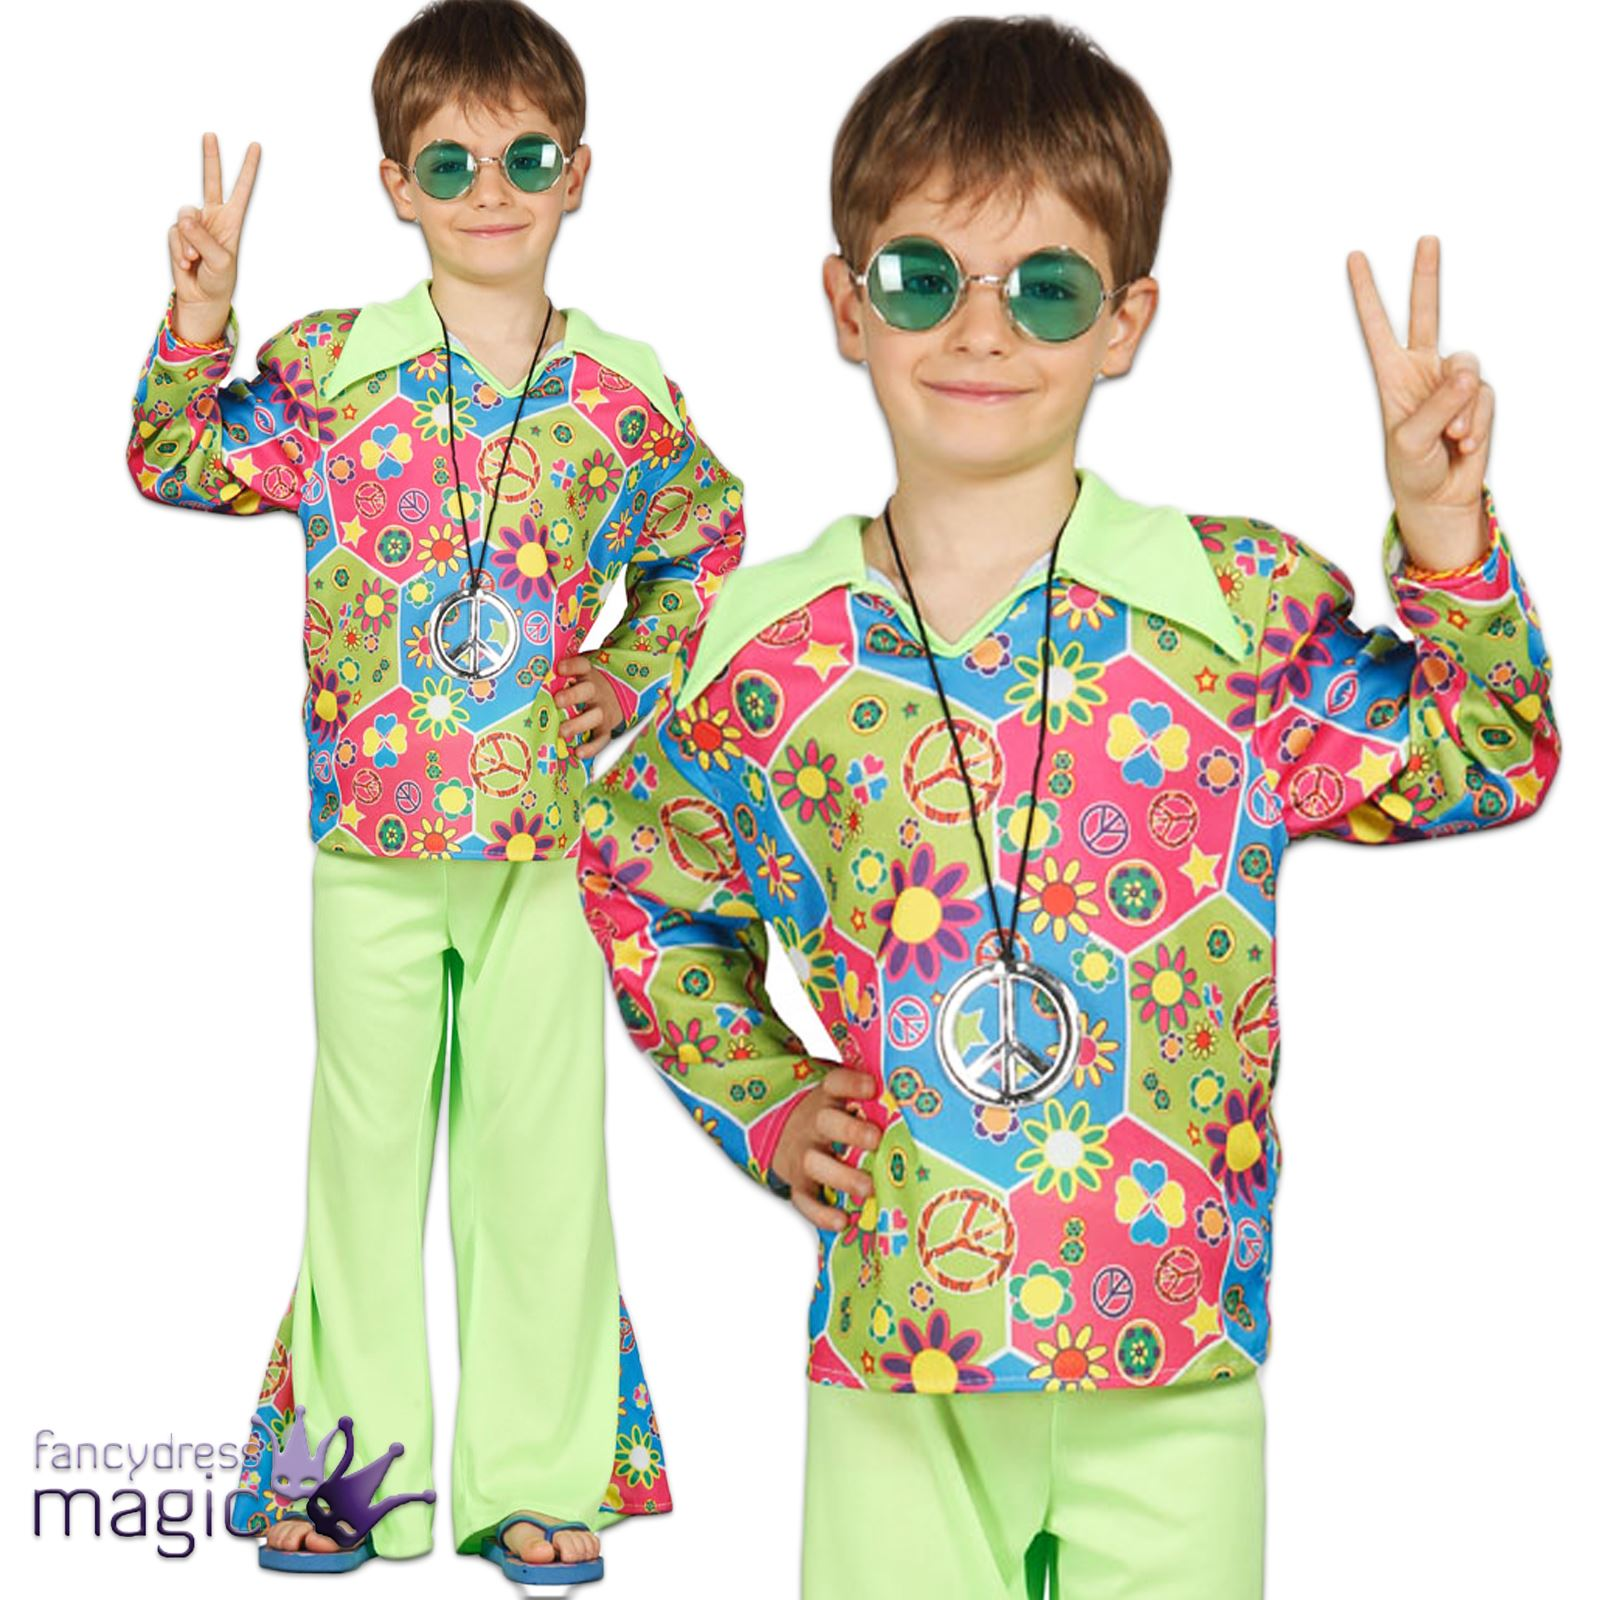 childs boys hippie hippy 60s 70s flower power peace fancy